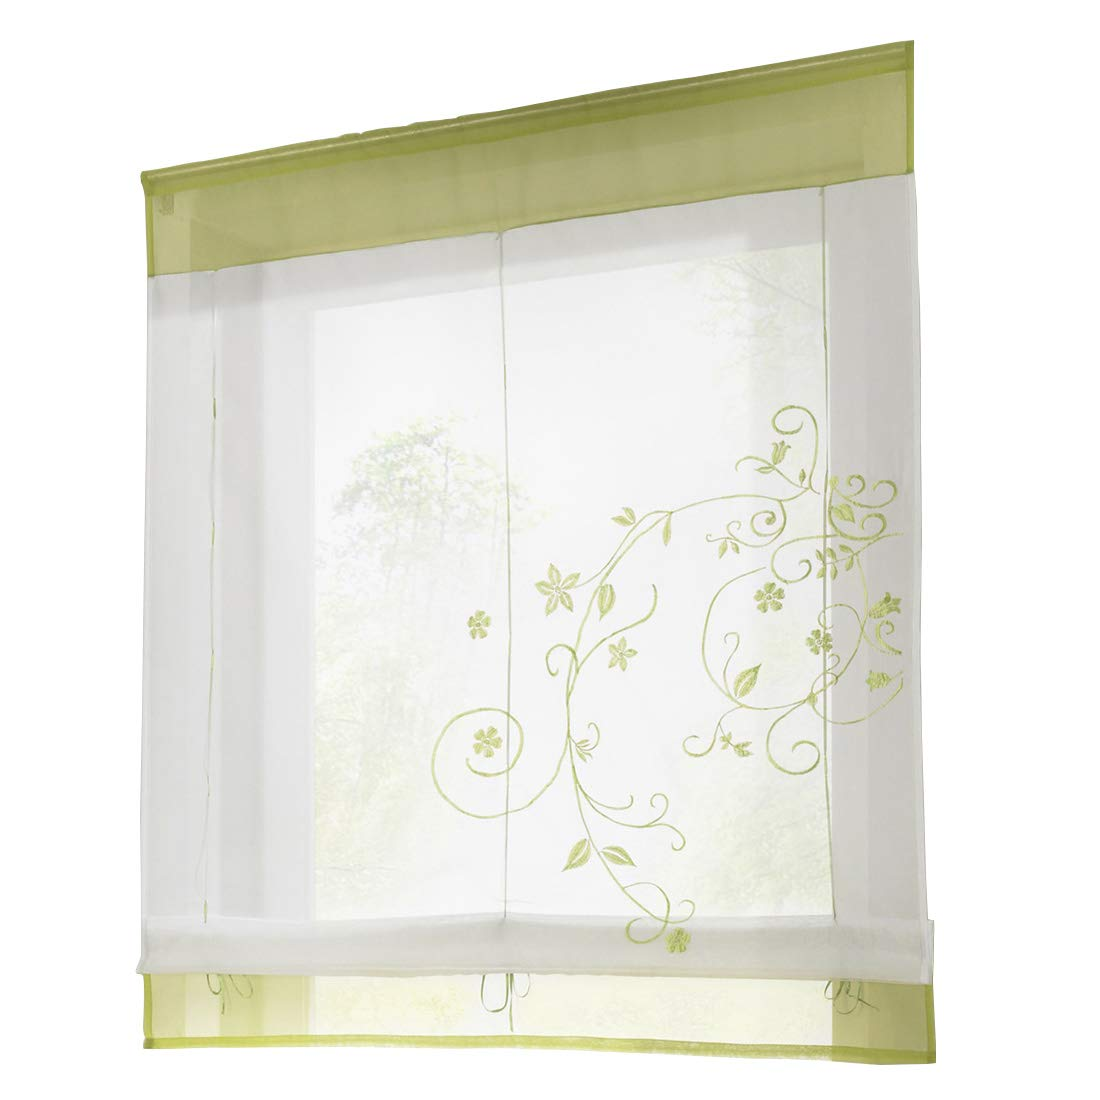 Yuena Care Roman Curtain Sheer Embroidered Blinds Lifting Window Shade Green S Beautylife88